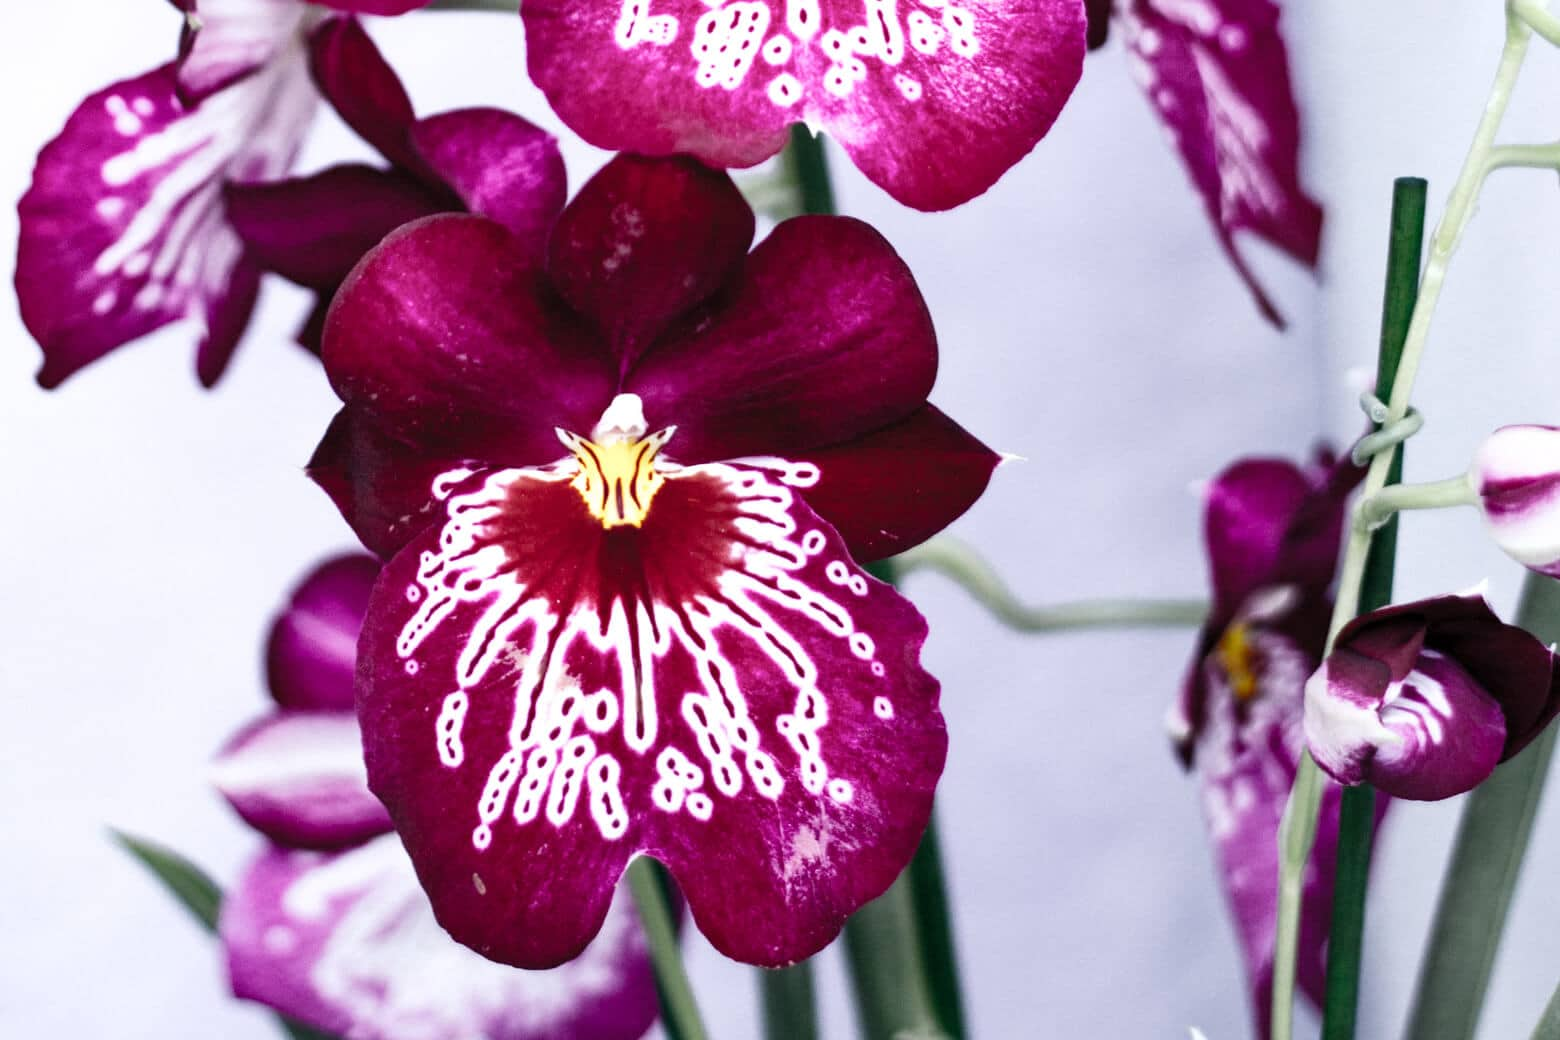 Stunning Orchids at Keukenhof